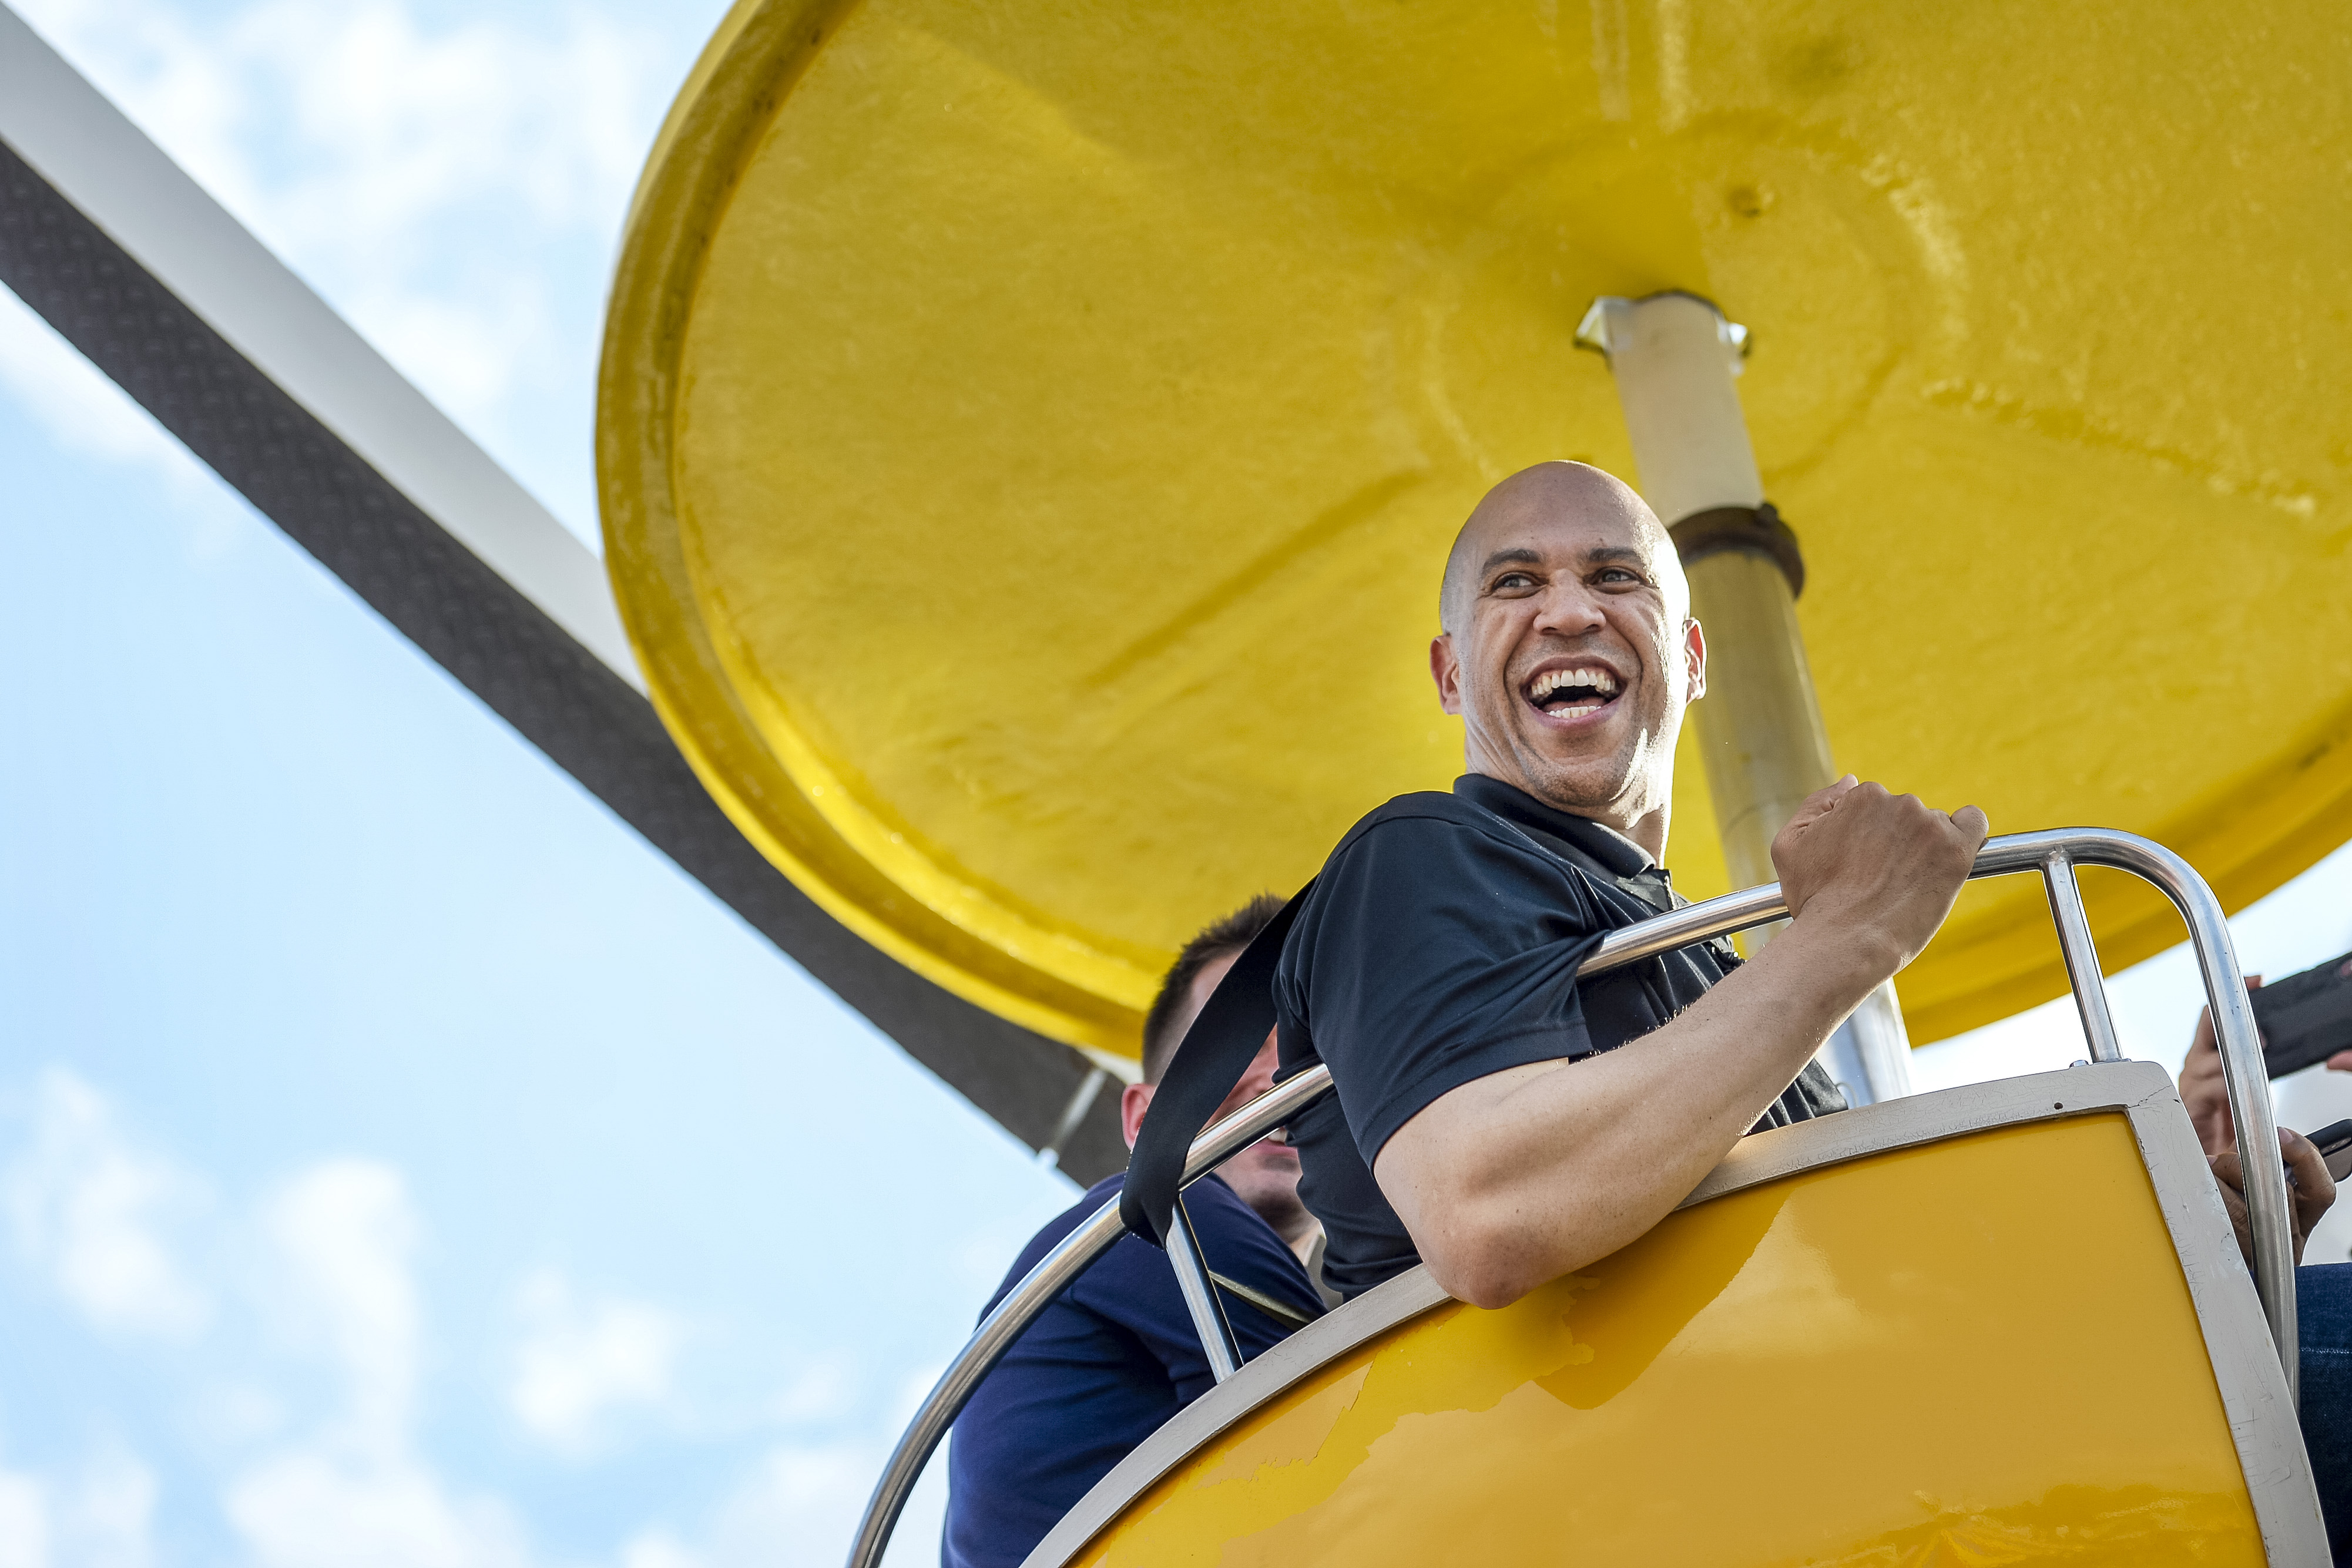 UNITED STATES - AUGUST 10: Democratic presidential candidate, Sen. Cory Booker, D-N.J., rides the ferris wheel at the Iowa State Fair on Saturday August 10, 2019. (Photo by Caroline Brehman/CQ Roll Call)